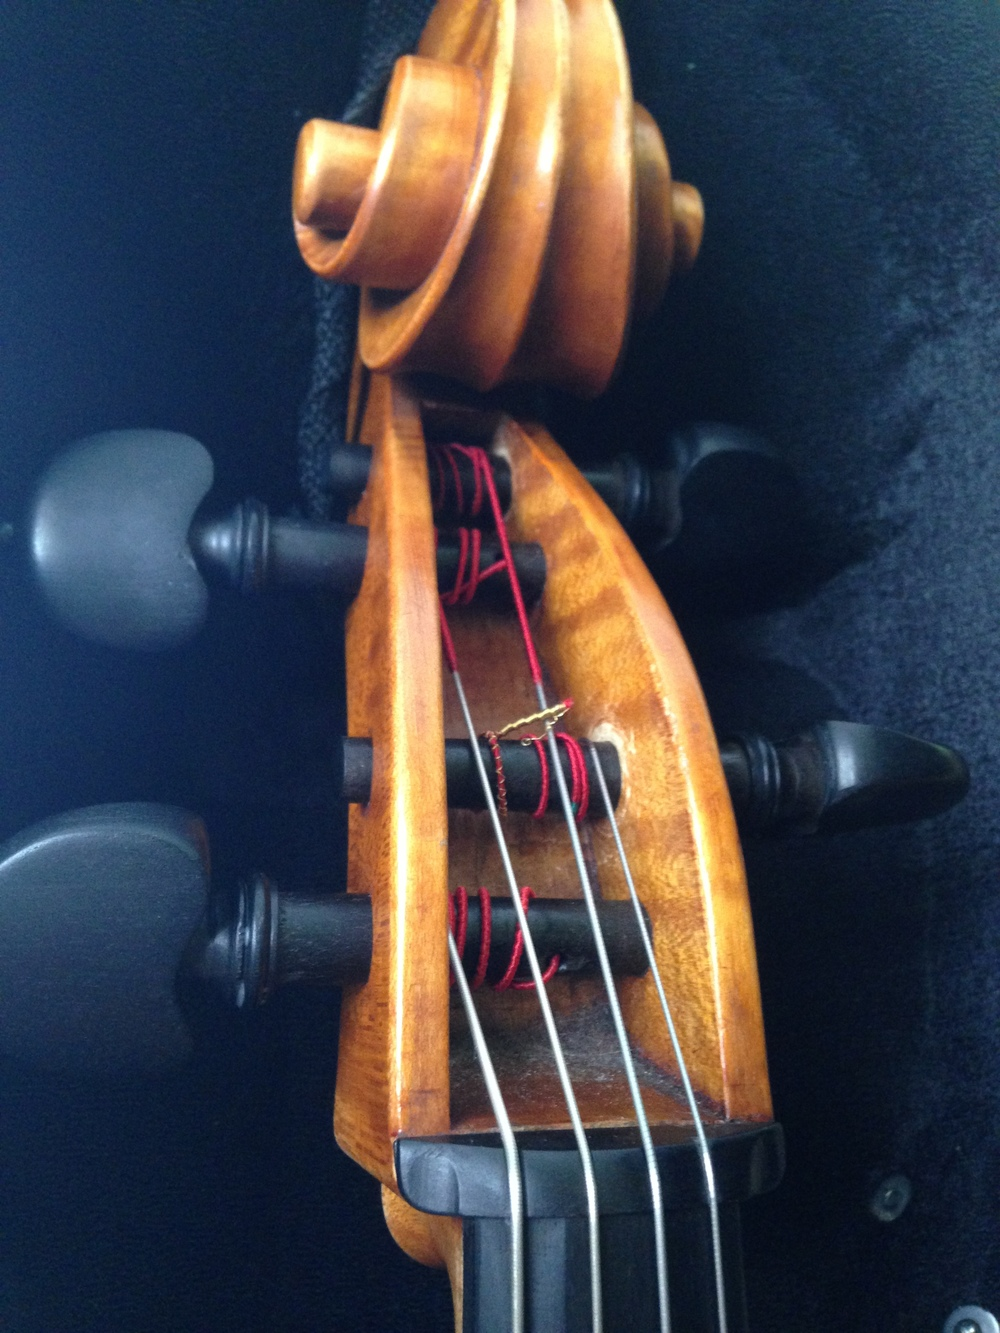 Michelle Kinney's cello